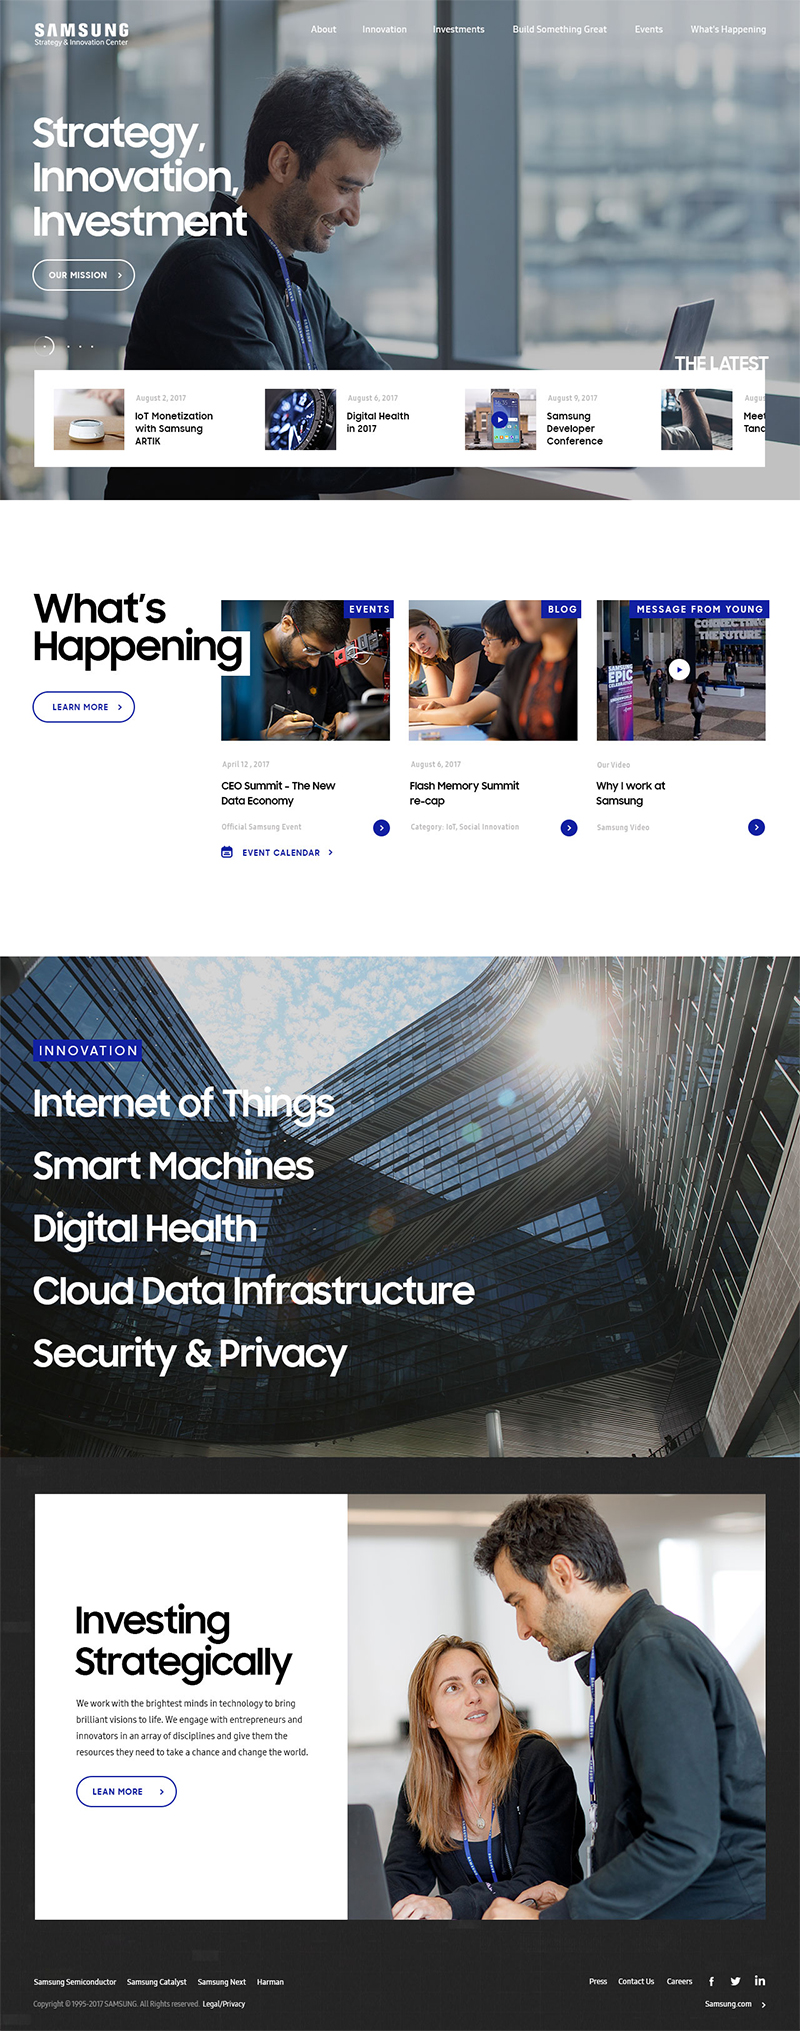 Samsung Strategy & Innovation Center - SSIC Home Page